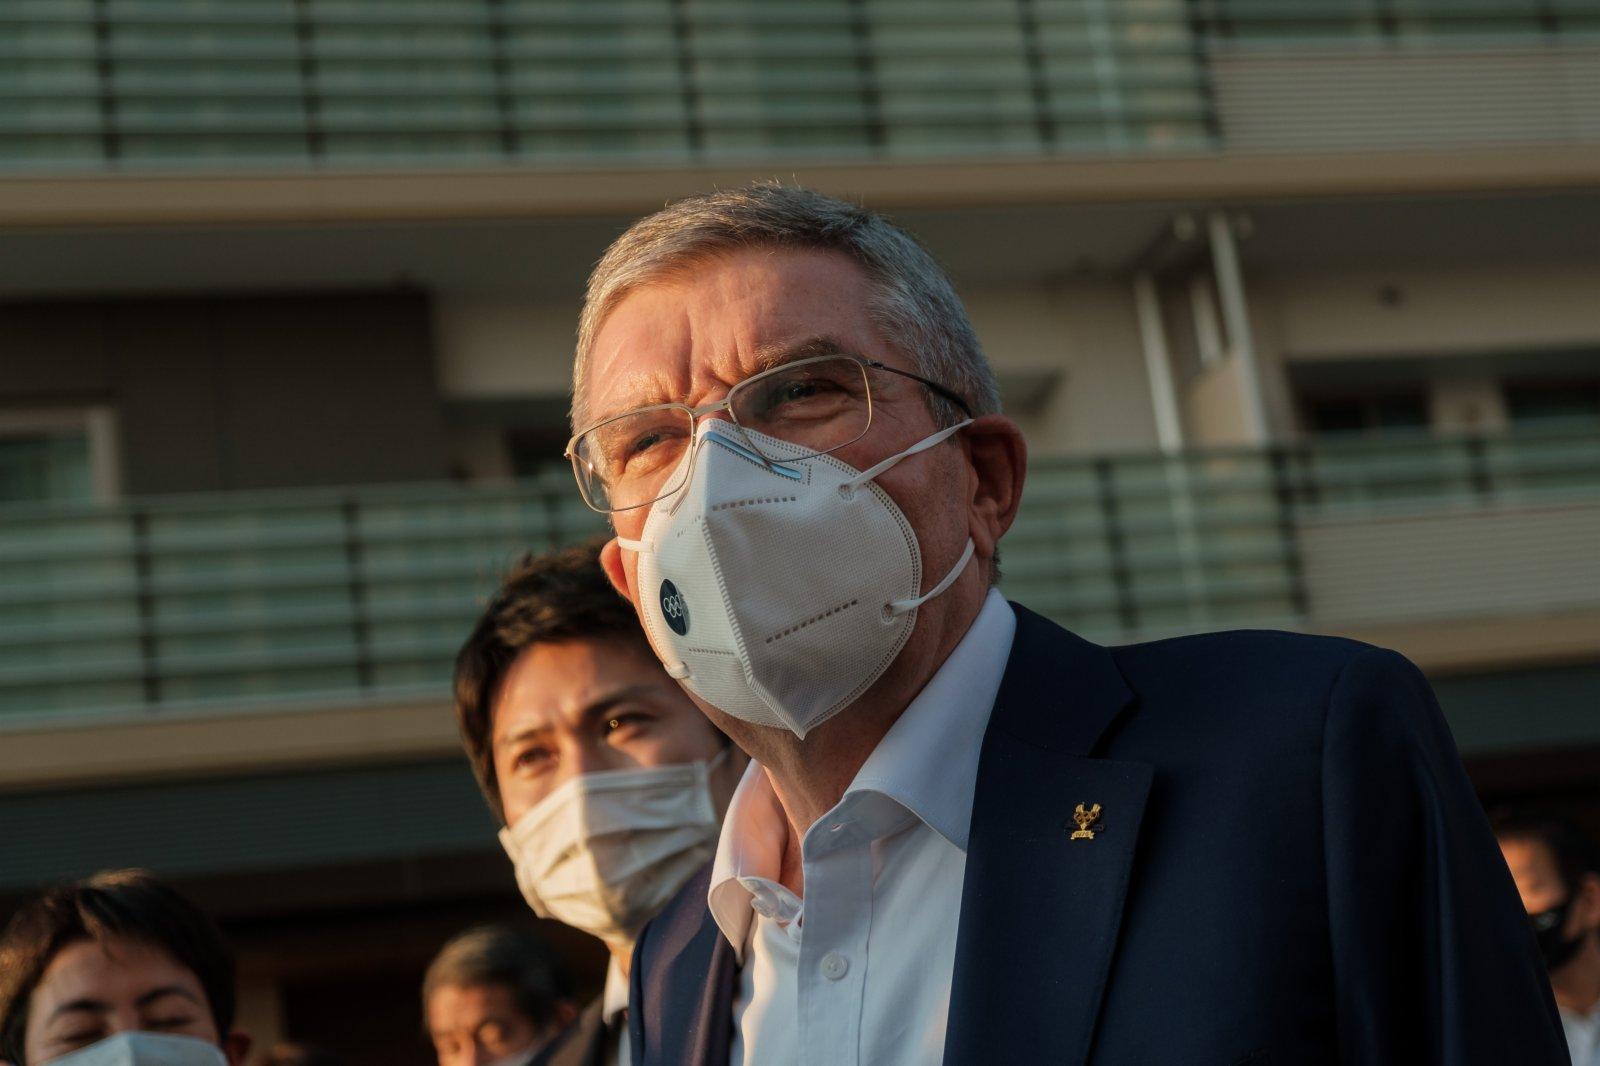 IOC president says he is confident that the Tokyo Olympics will be held in July